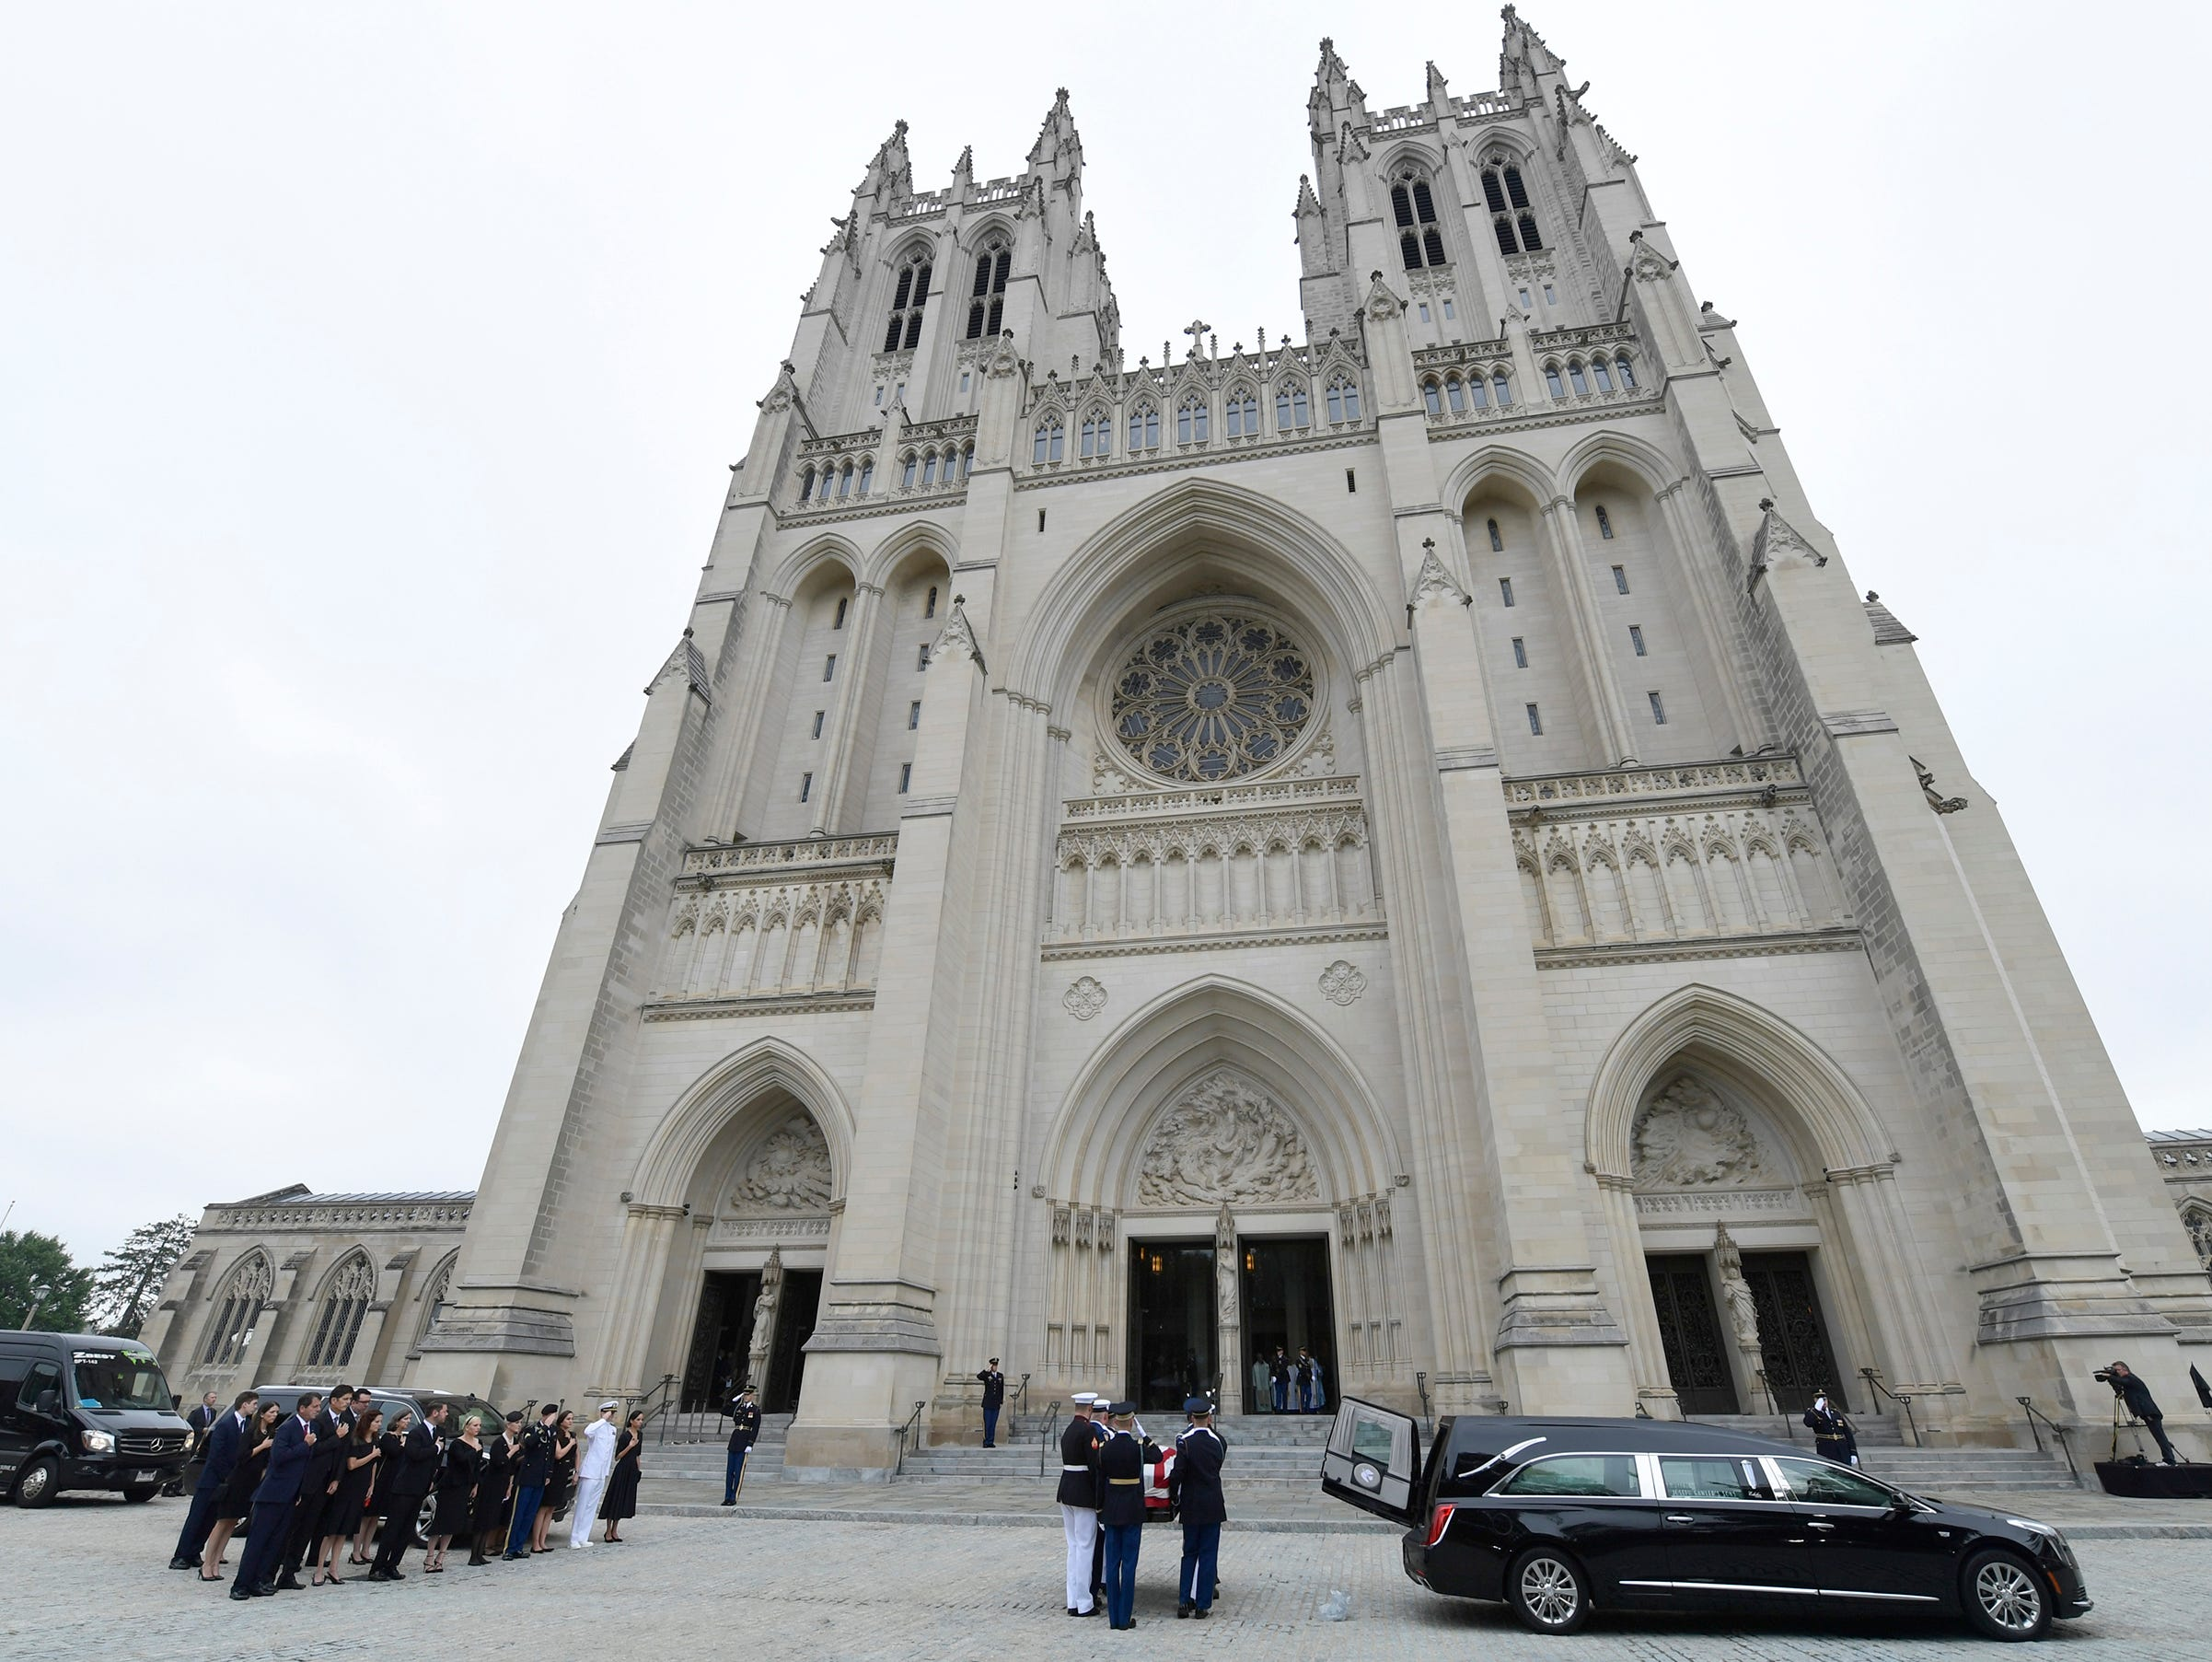 The casket of Sen. John McCain, R-Ariz., arrives for his memorial service at the Washington National Cathedral.